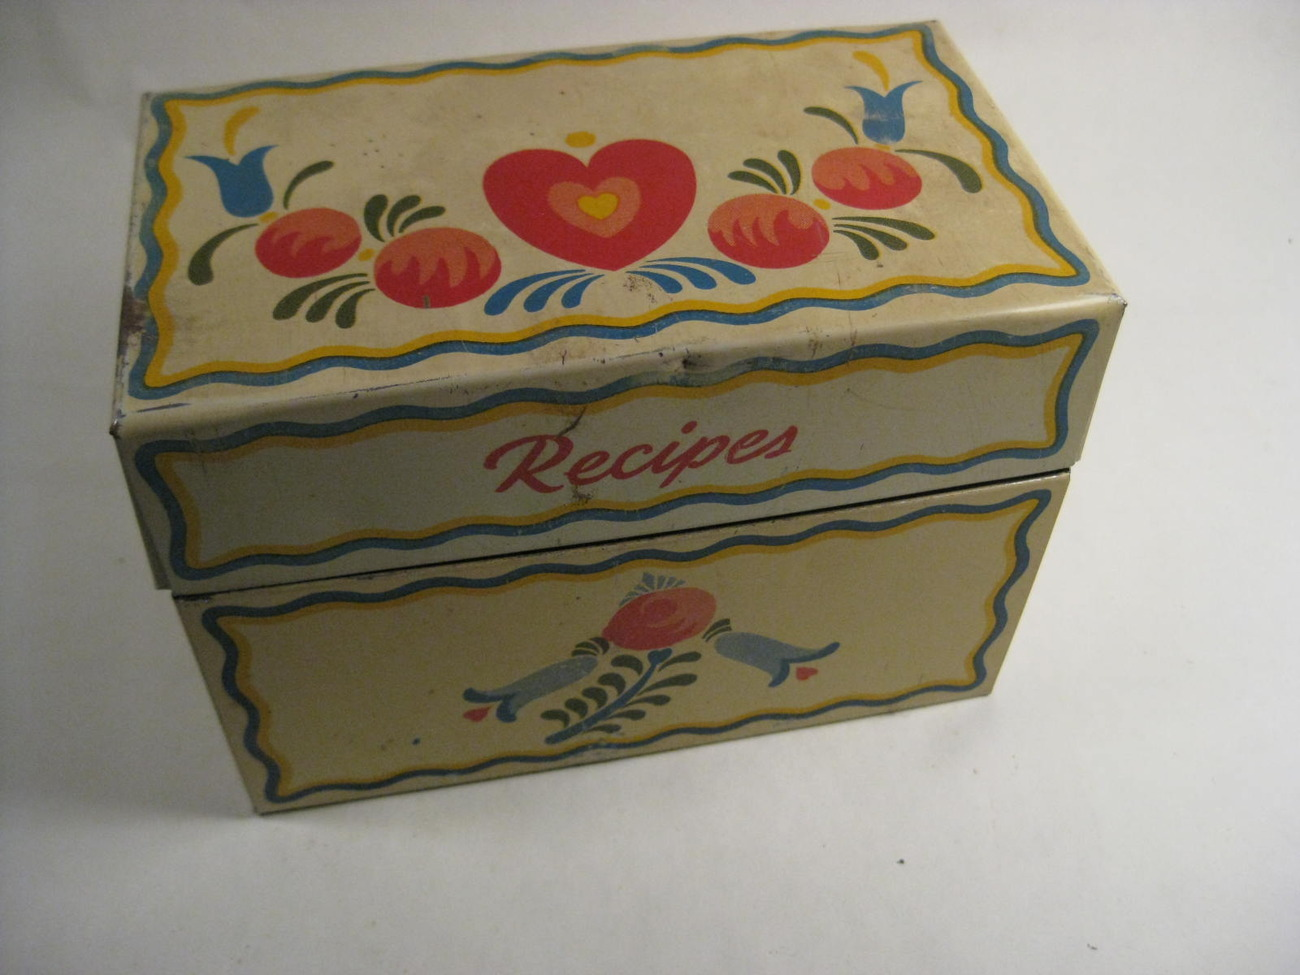 Primary image for VINTAGE RECIPE BOX 1940's TIN VINTAGE OHIO ARTS